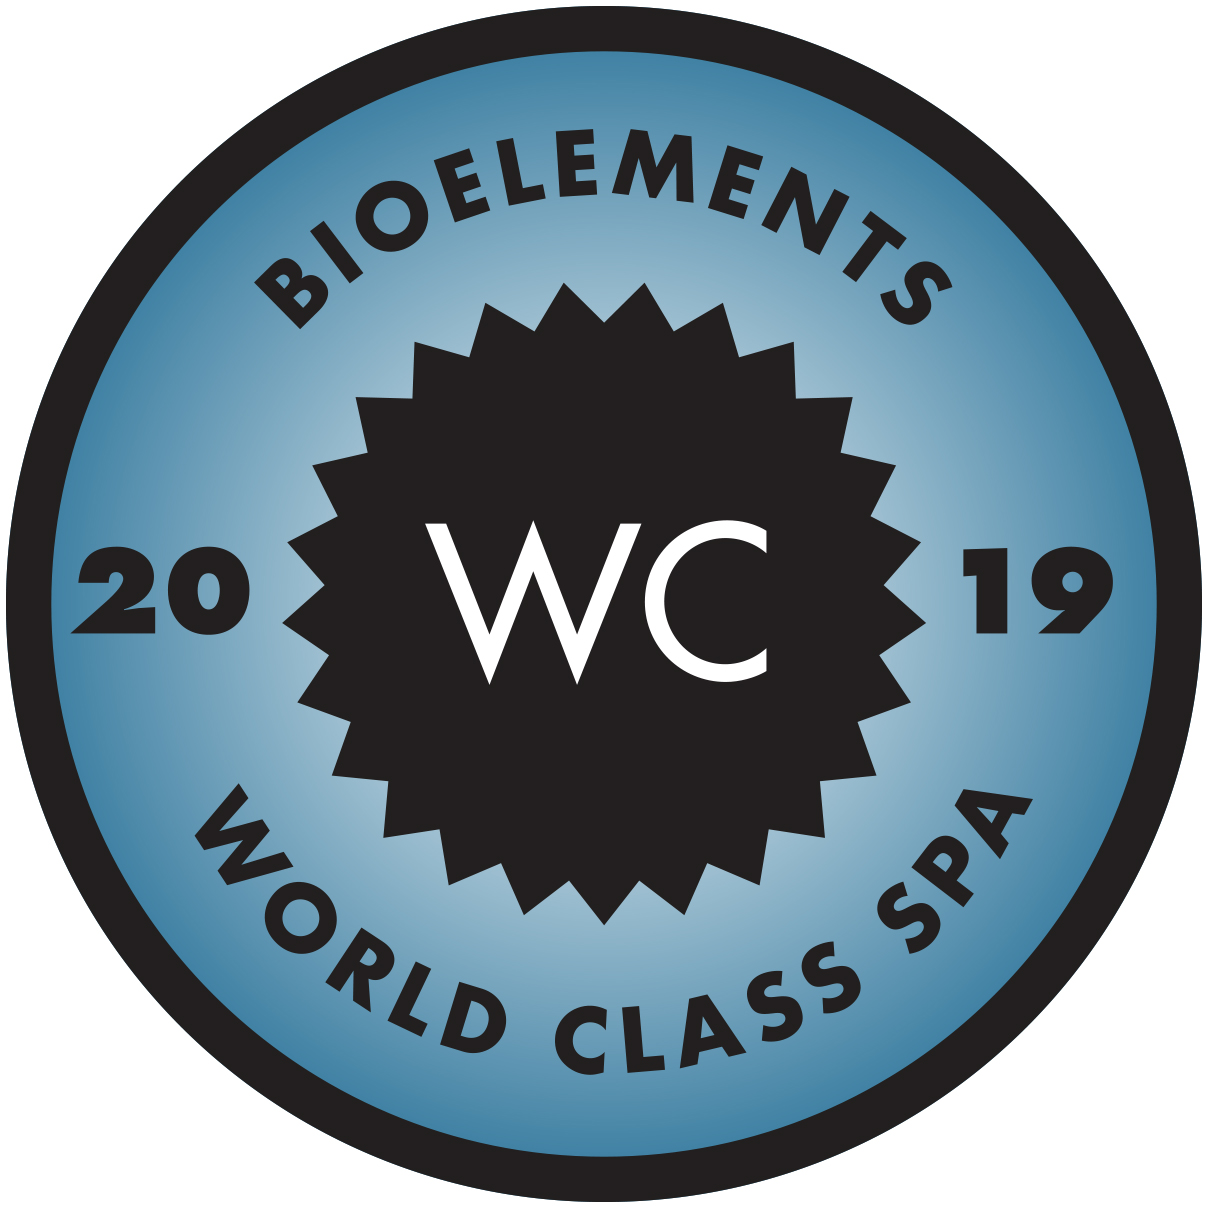 Bioelements2019 World Class Seal.jpg